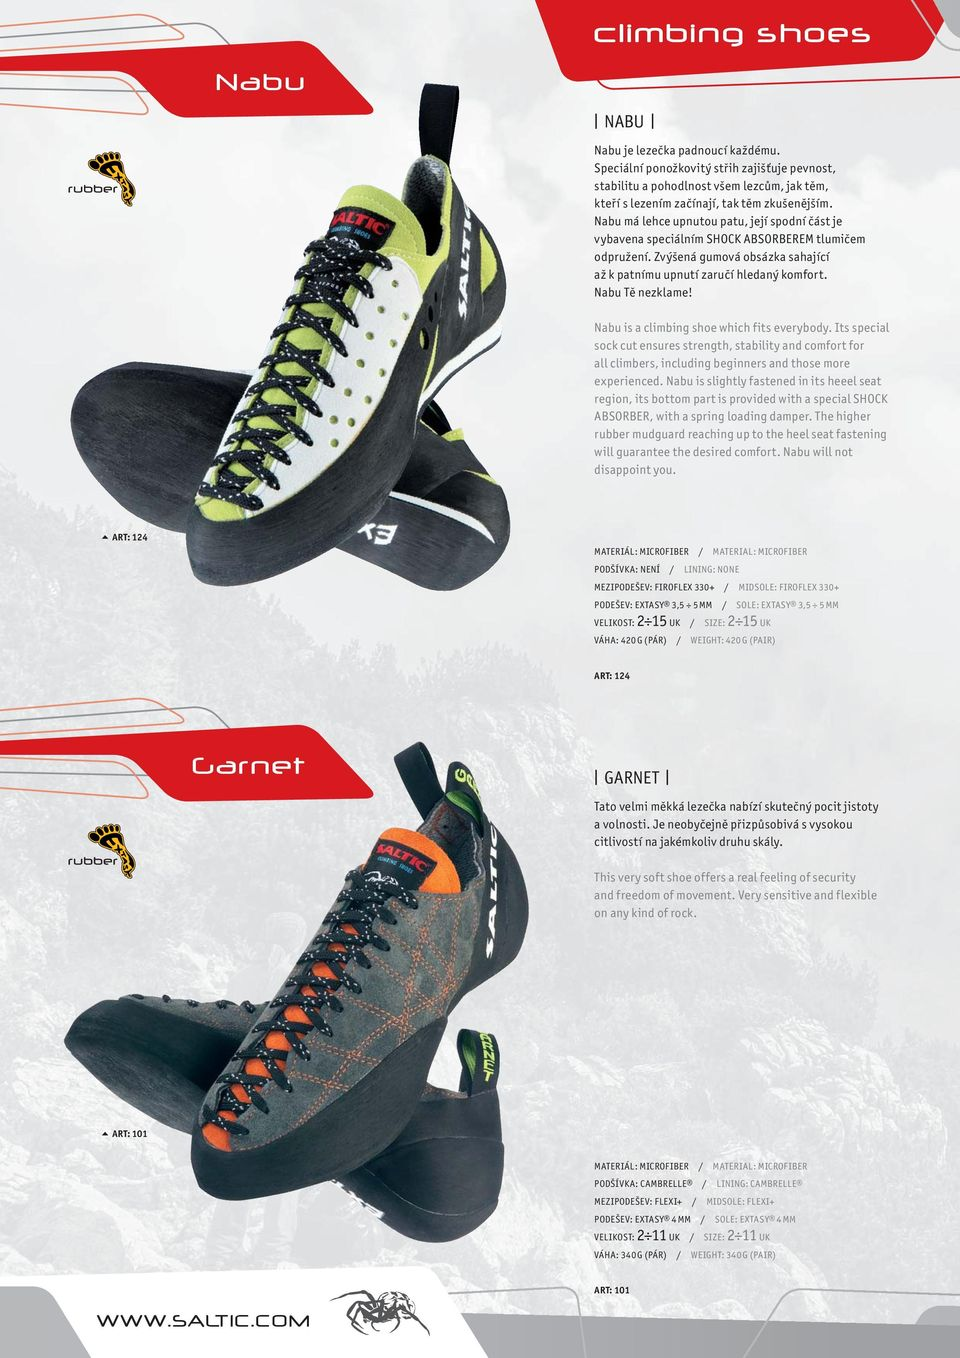 Nabu is a climbing shoe which fits everybody. Its special sock cut ensures strength, stability and comfort for all climbers, including beginners and those more experienced.